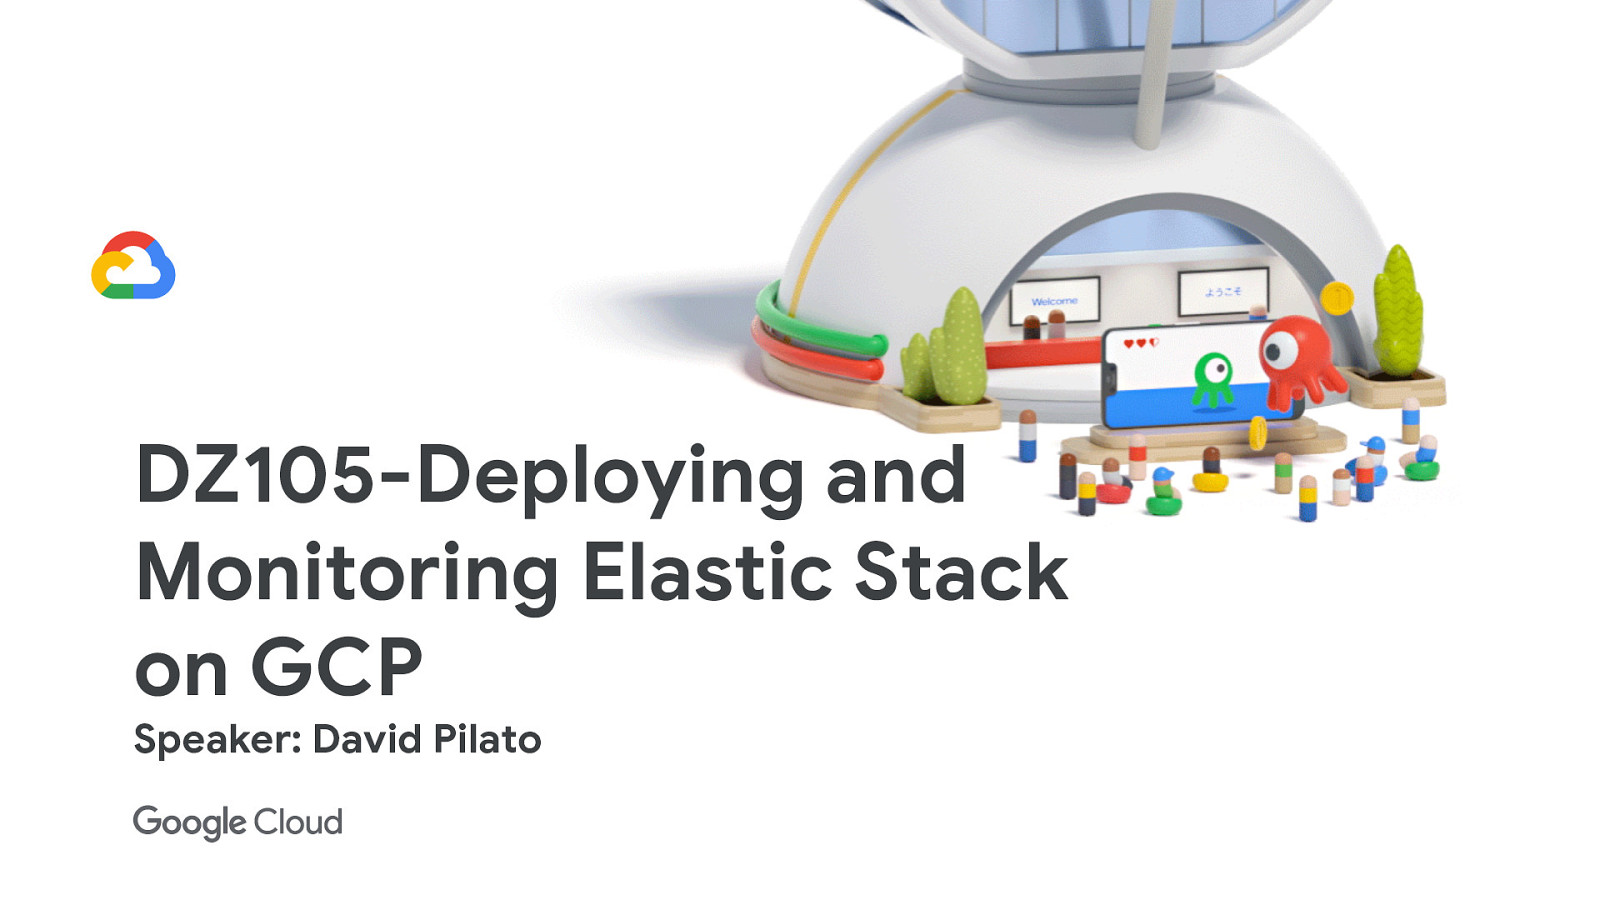 Deploying and Monitoring Elastic Stack on GCP